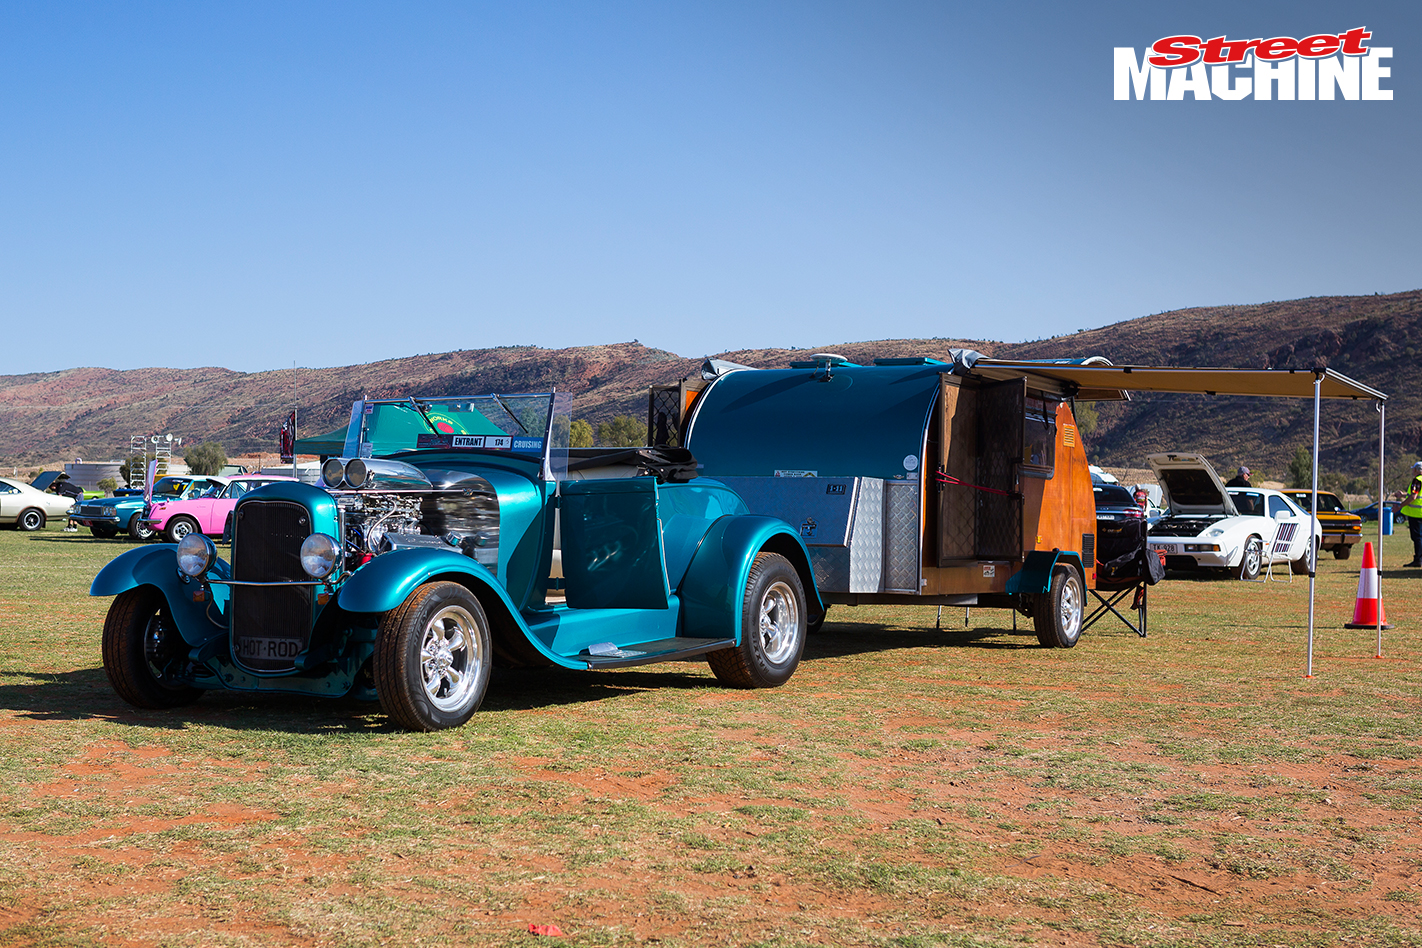 Hot Rod Trailer Nw